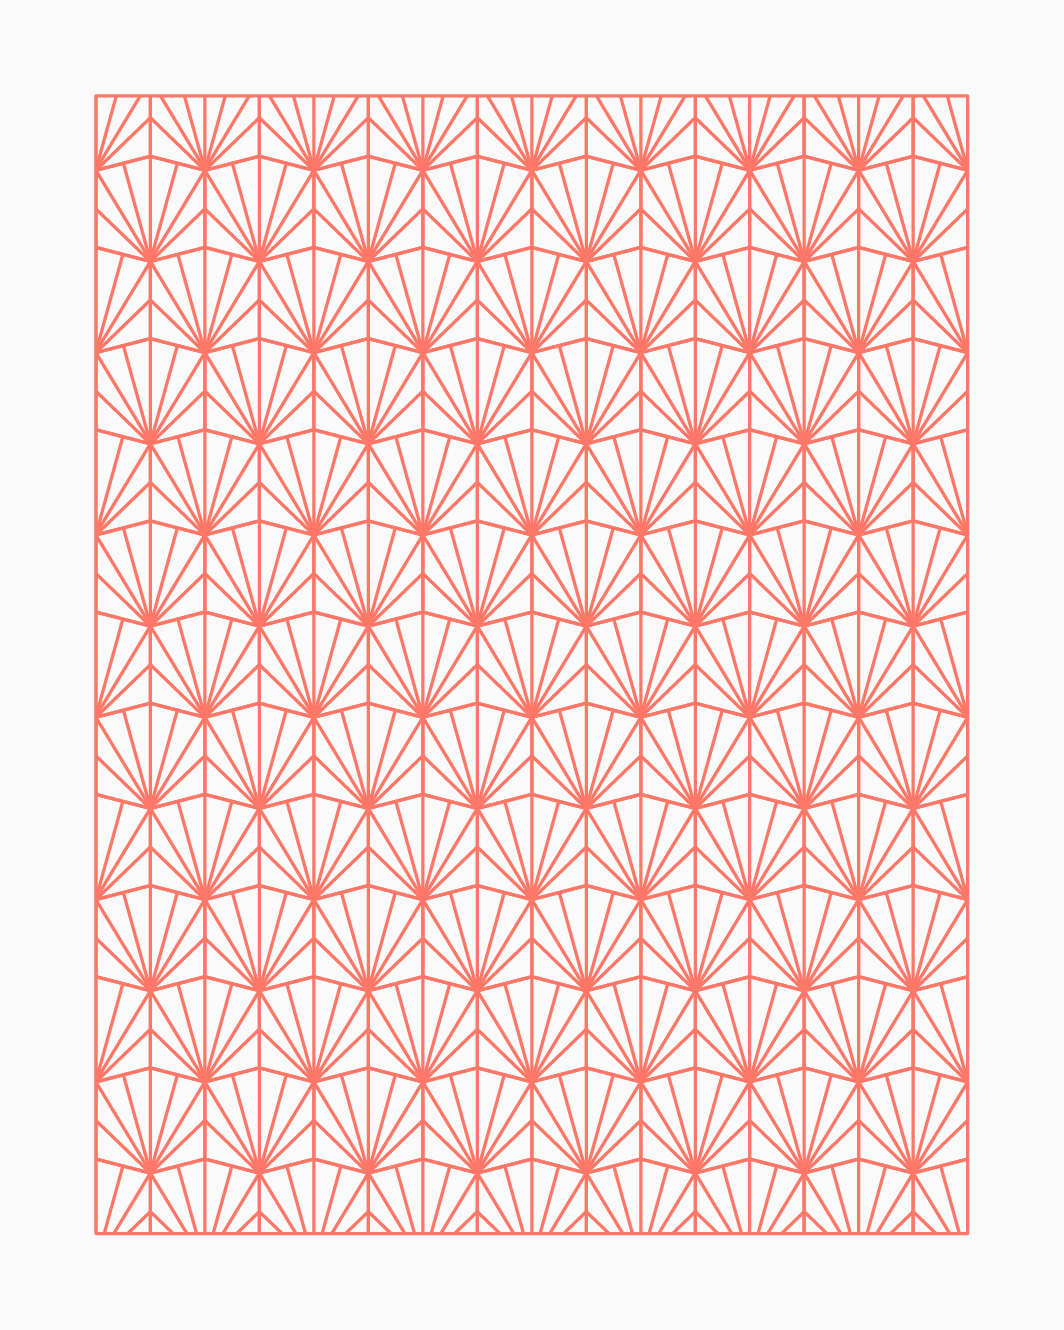 Brand identity and pattern by Stockholm-based Bedow for Swedish media company Fab Media